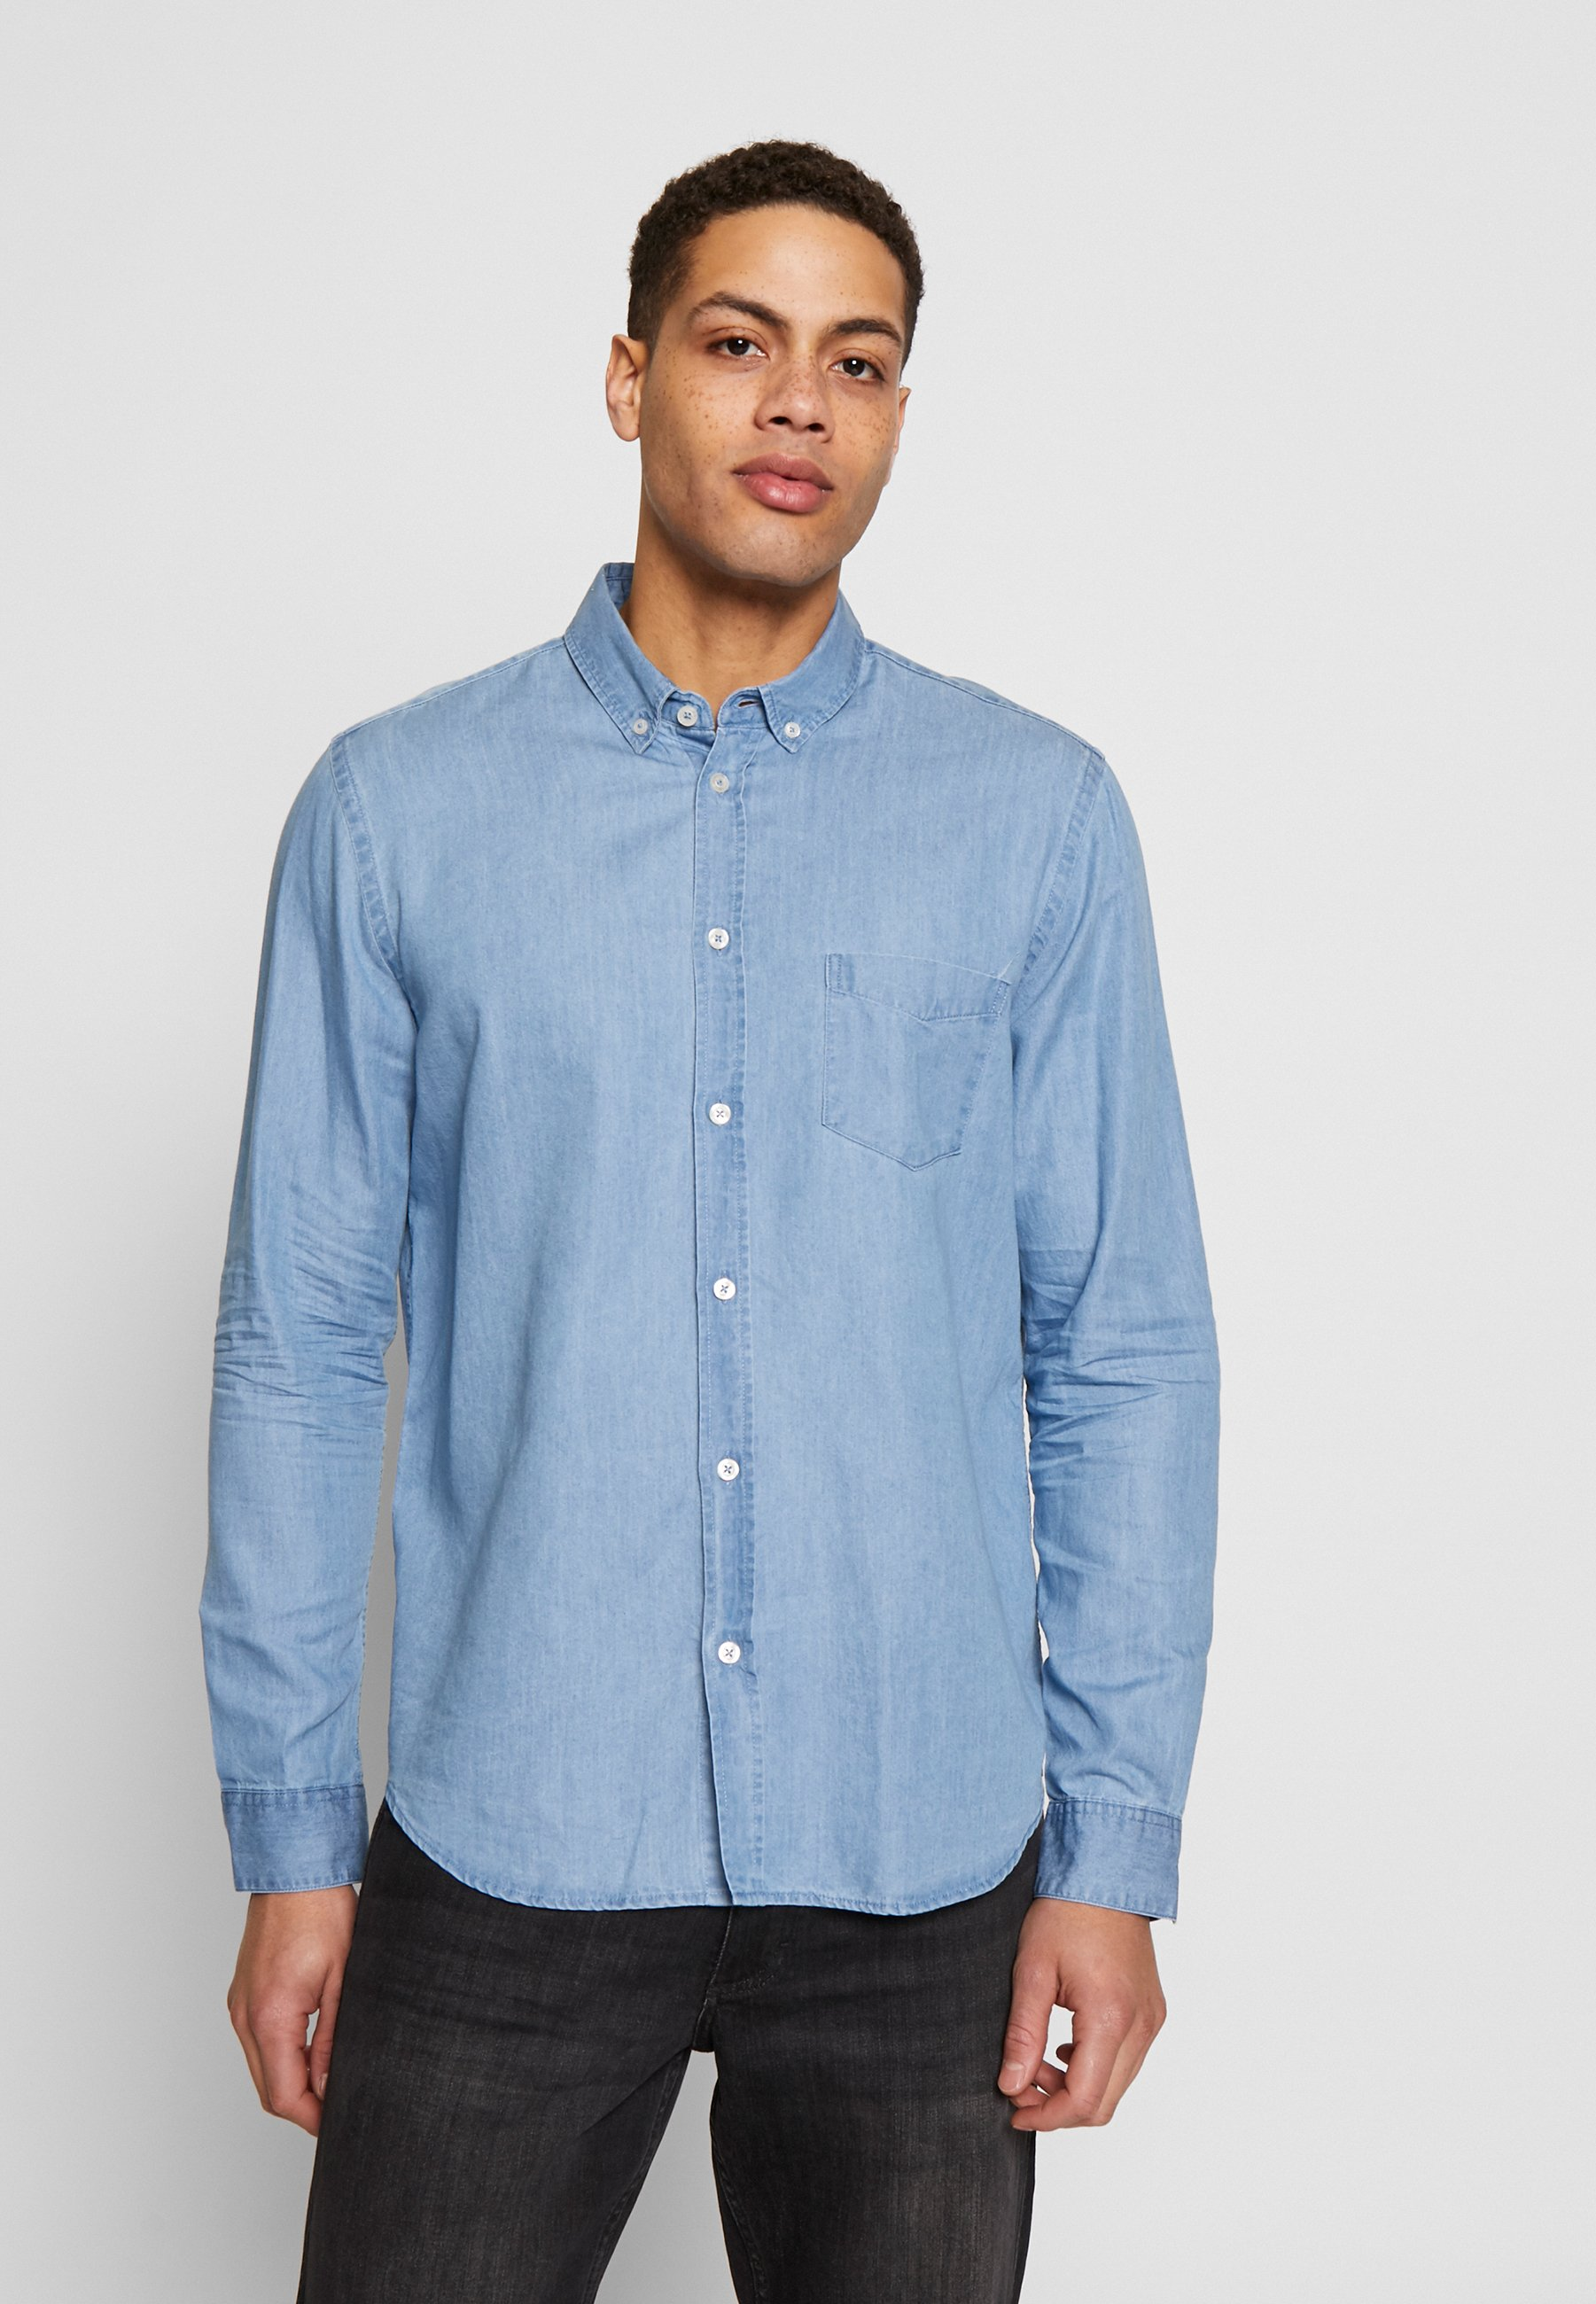 Samsøe Samsøe LIAM SHIRT Skjorte light blue Zalando.no